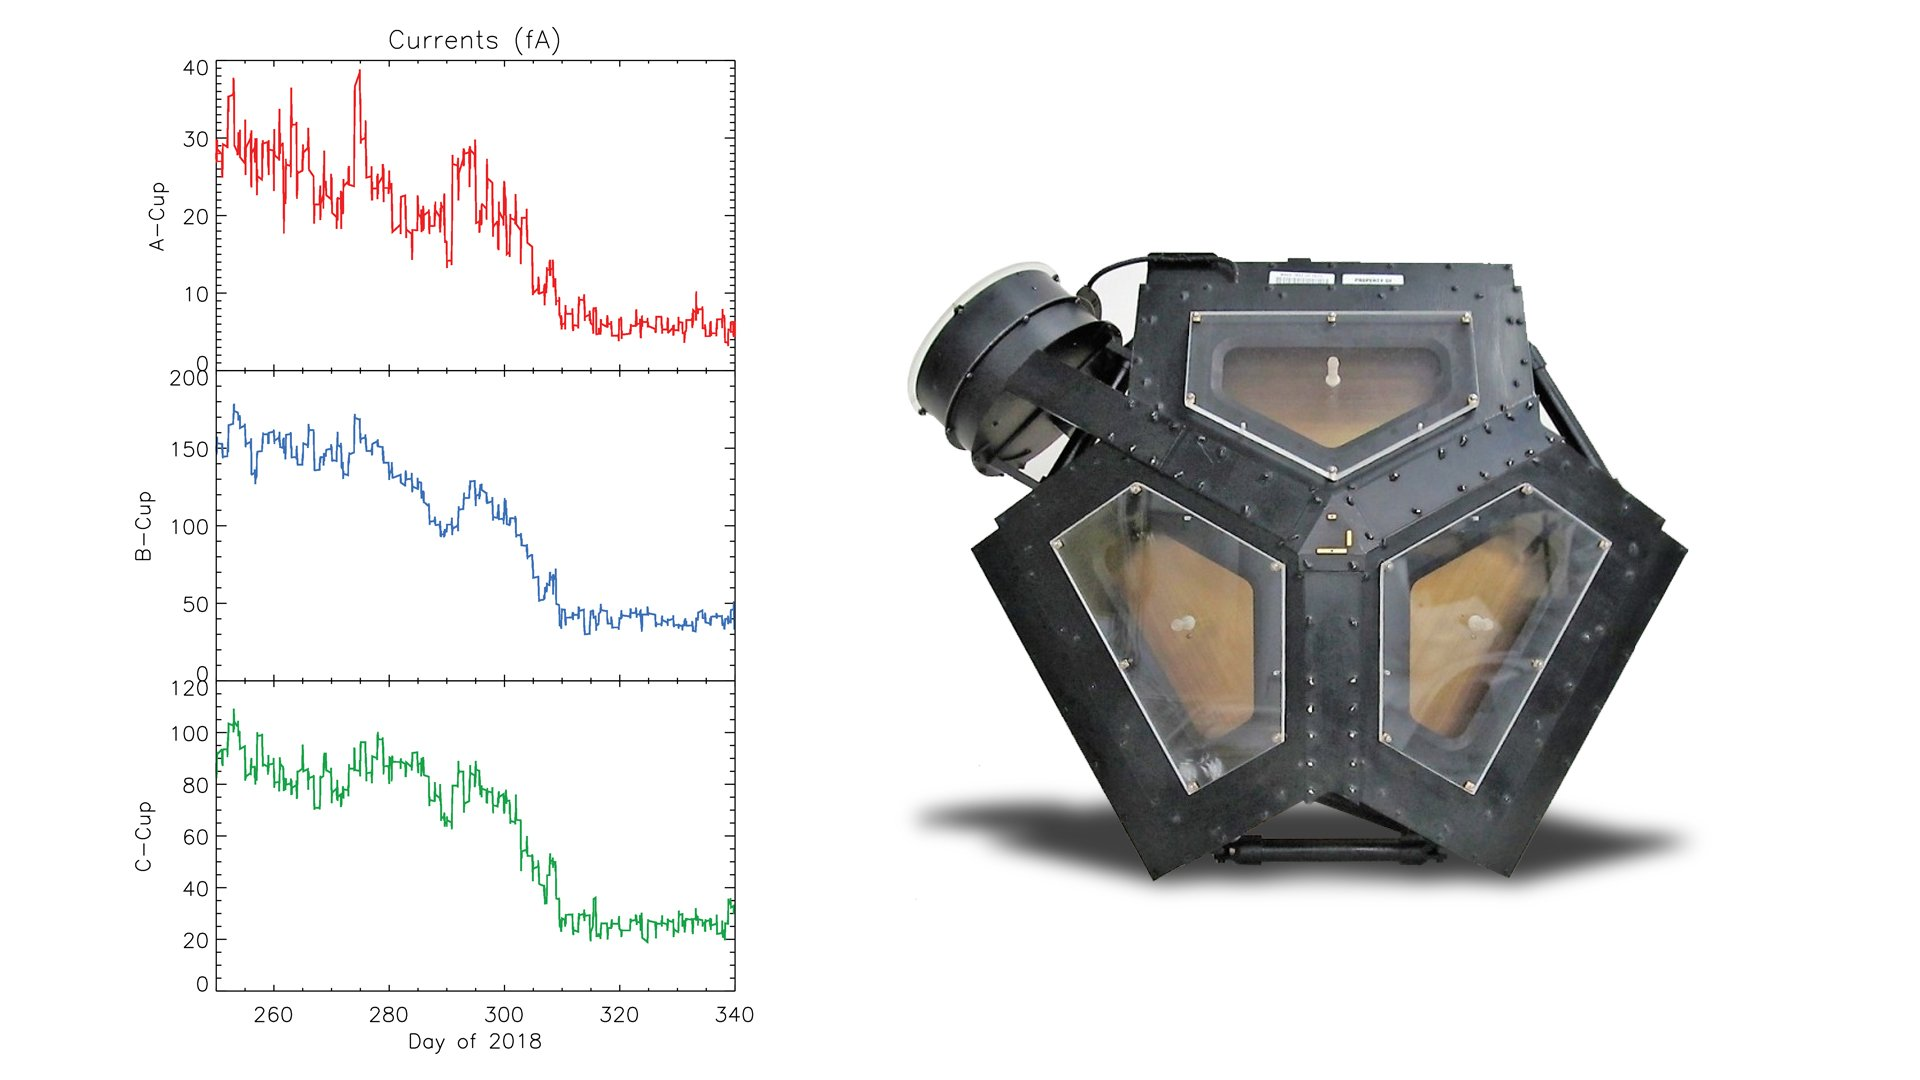 The set of graphs on the left illustrates the drop in electrical current detected in three directions by Voyager 2's plasma science experiment (PLS) to background levels. They are among the key pieces of data that show that Voyager 2 entered interstellar space in November 2018. Credit: NASA/JPL-Caltech/MIT